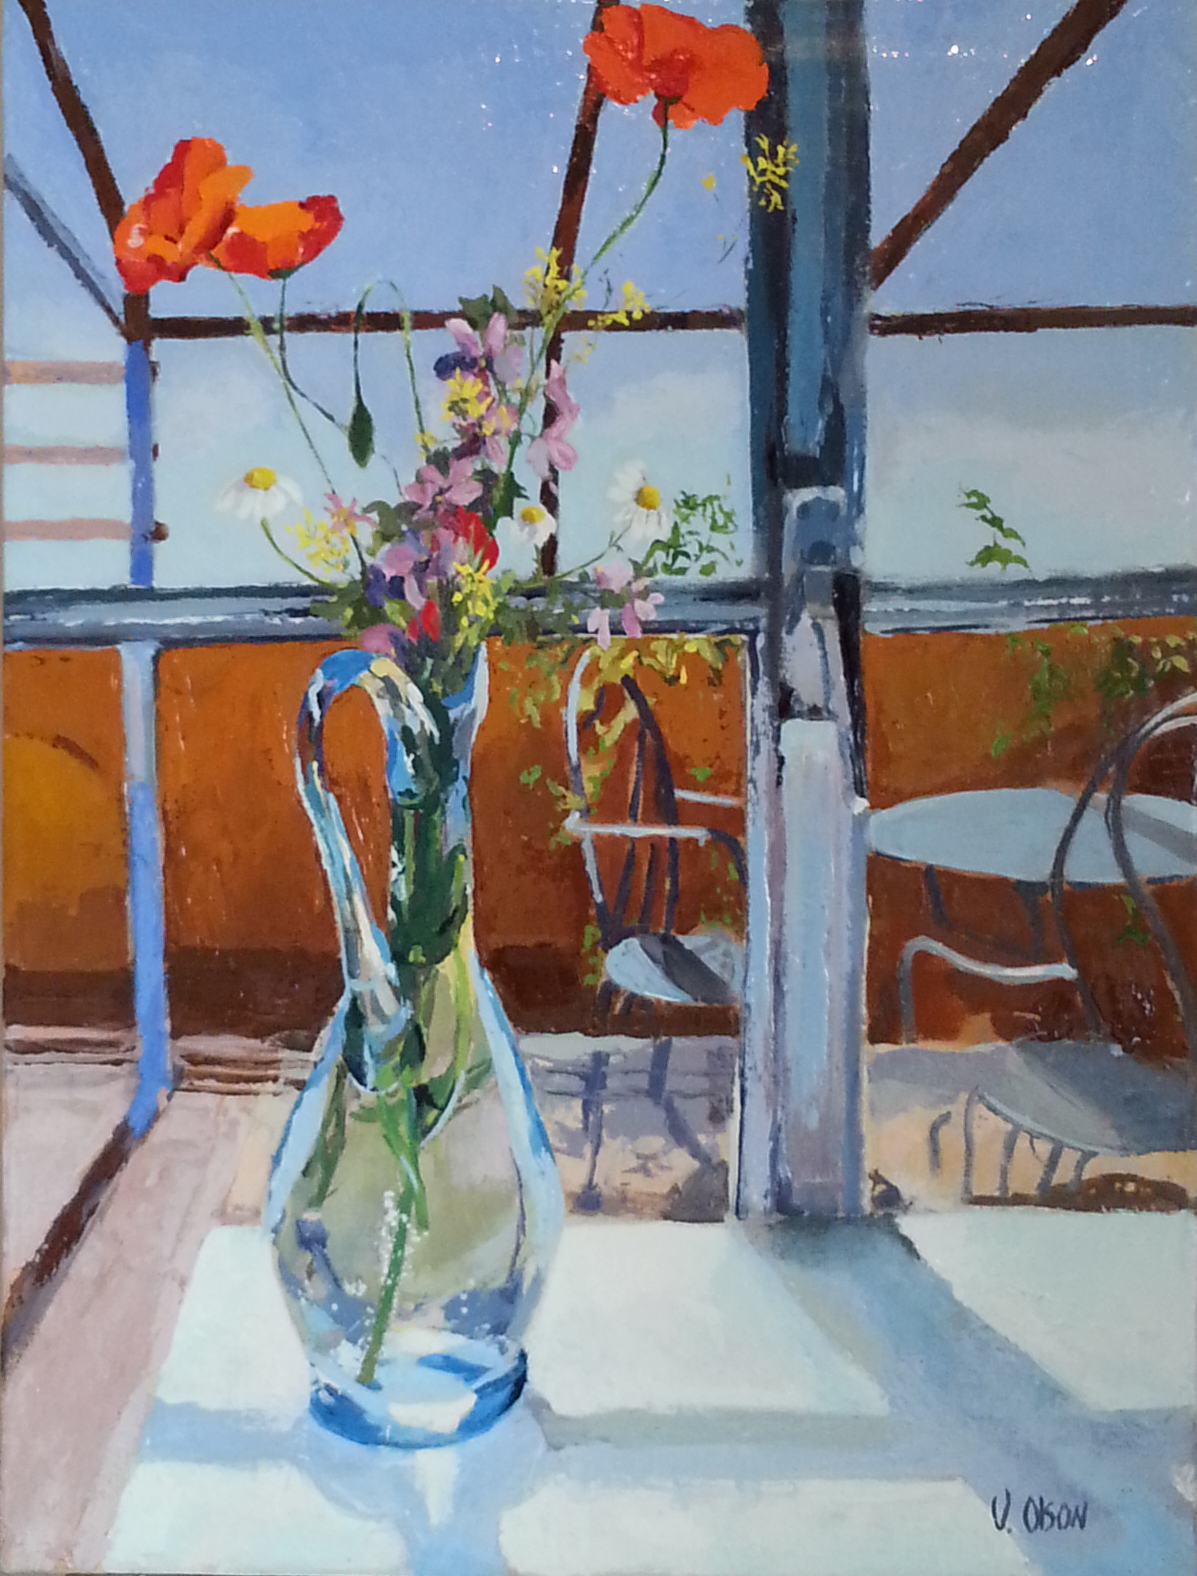 Red Poppies and Wild Flowers in a glass blue Ewer. The Ewer is sitting on a white table in front of a window door